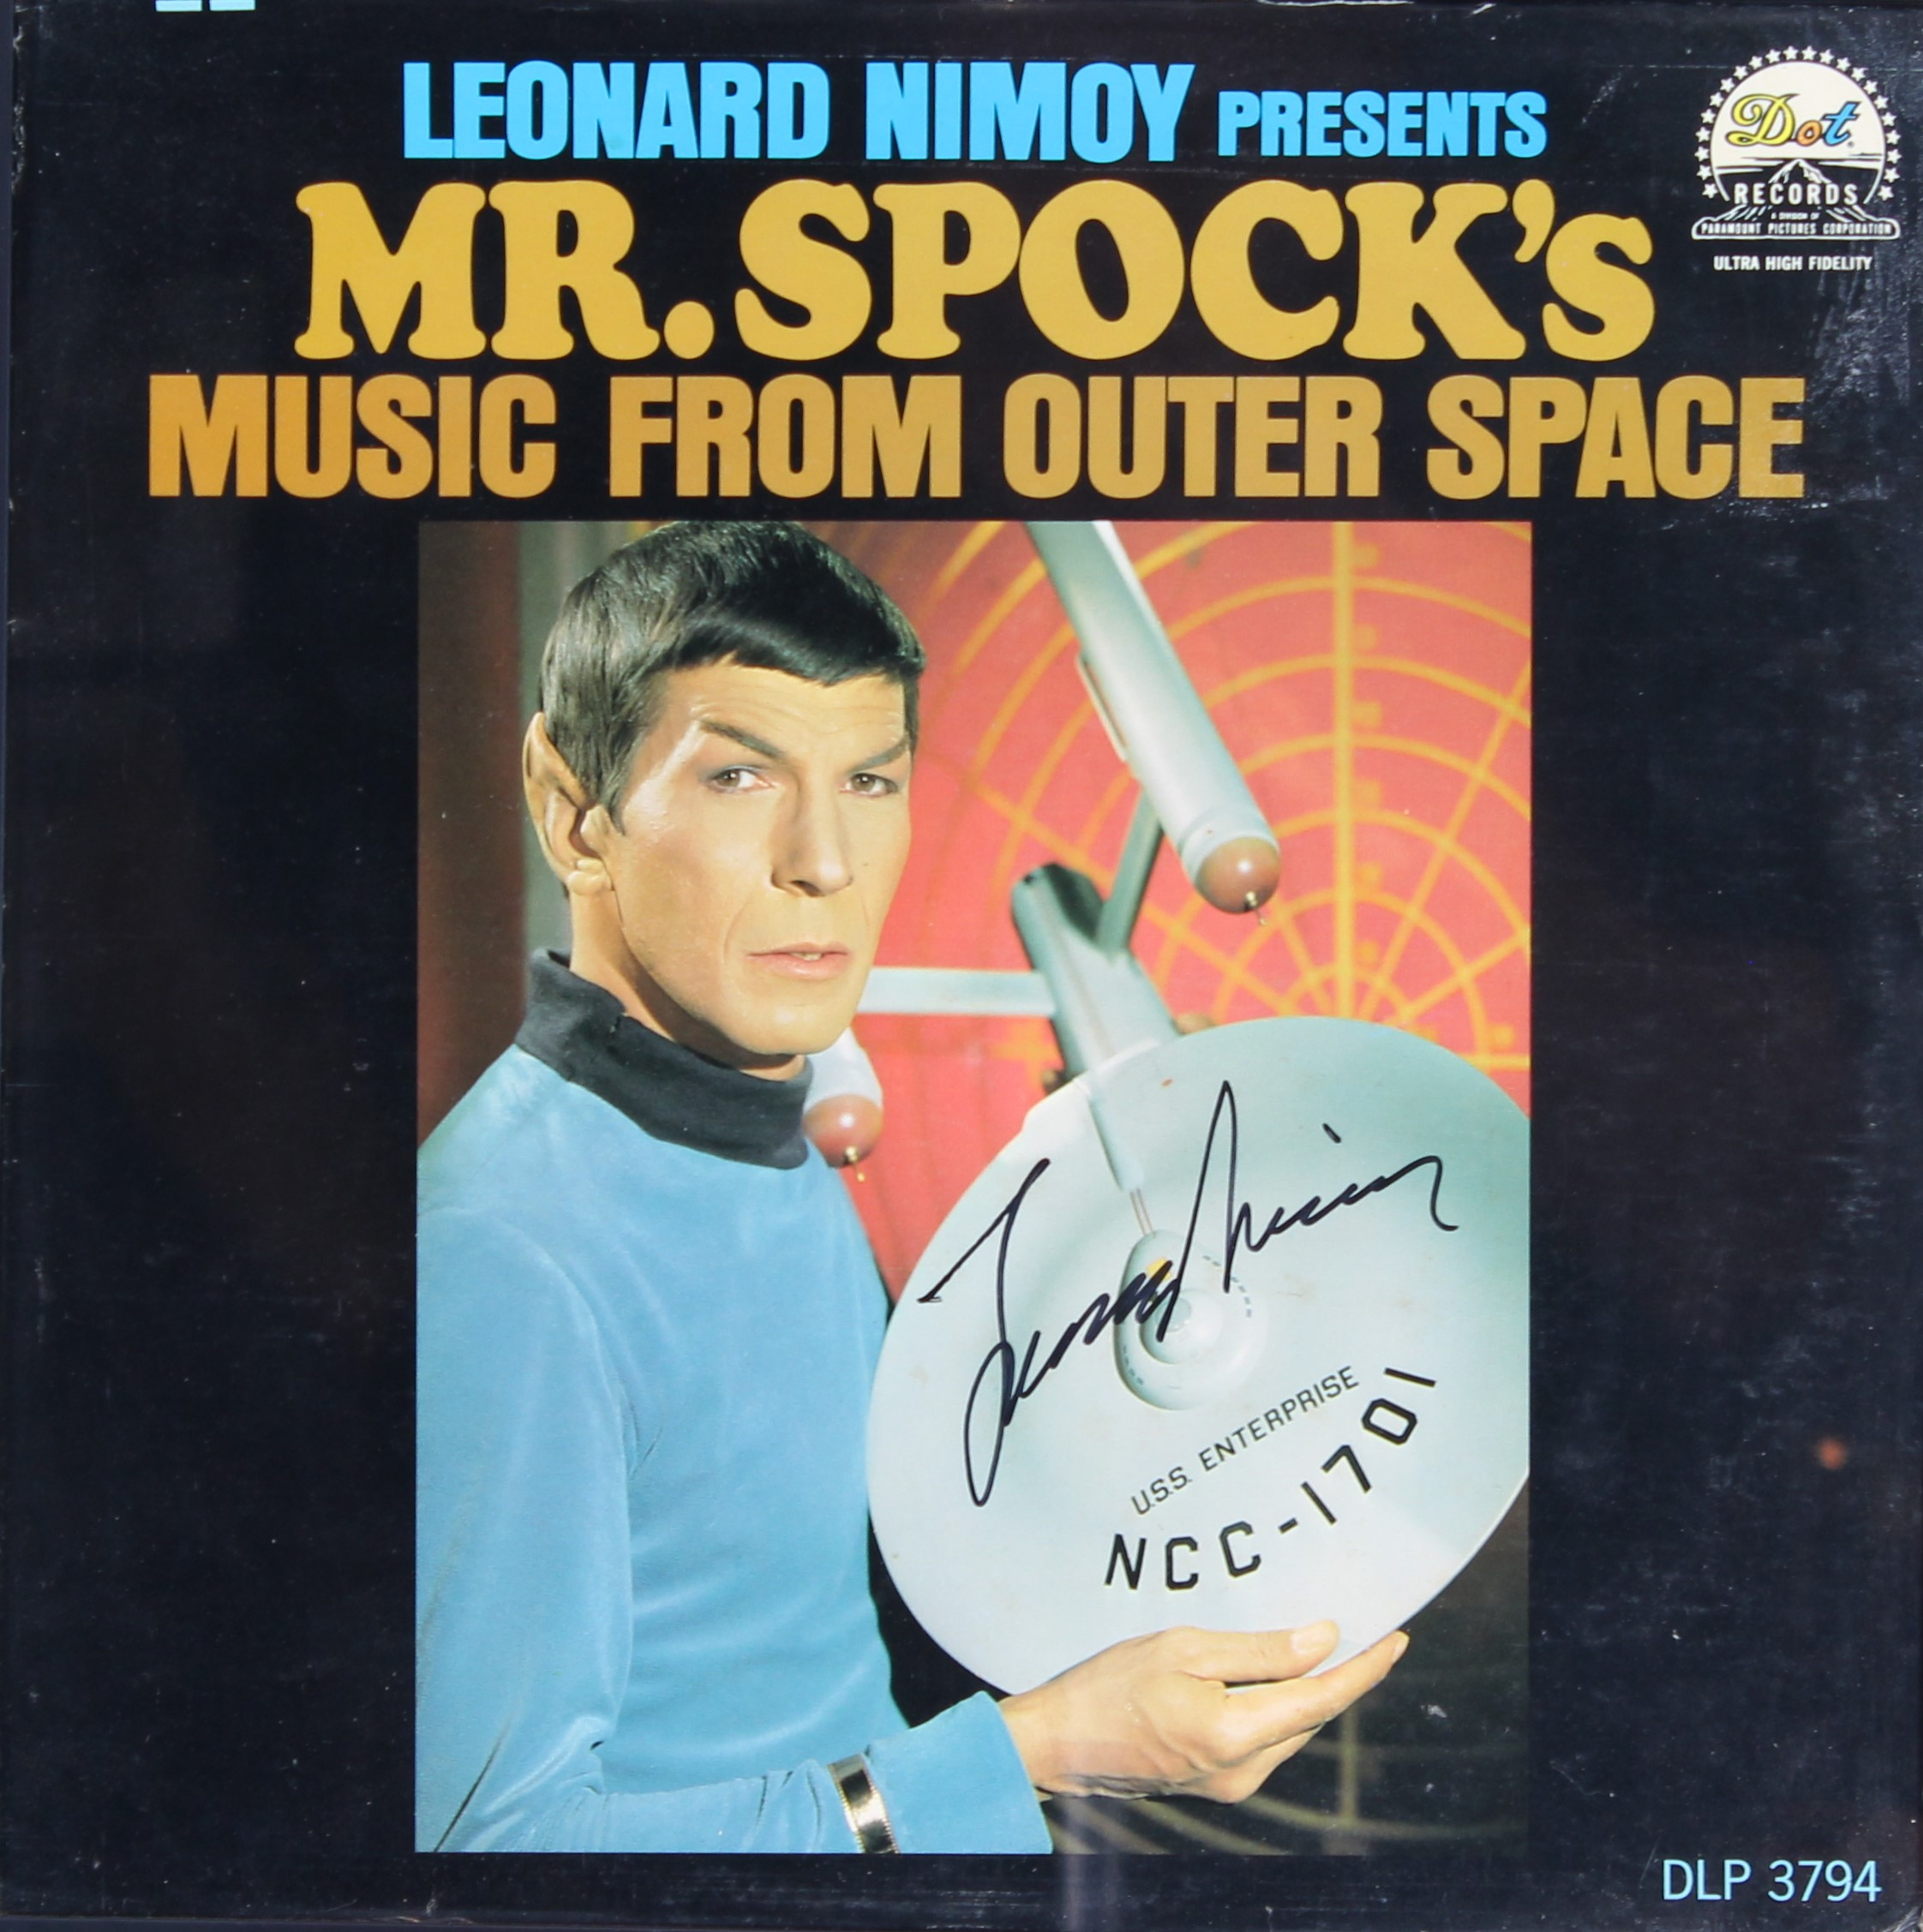 The cover of the LP record Mr. Spock's Music from Outer Space, showing Spock holding the three-foot model of the Enterprise. It is signed by Leonard Nimoy.